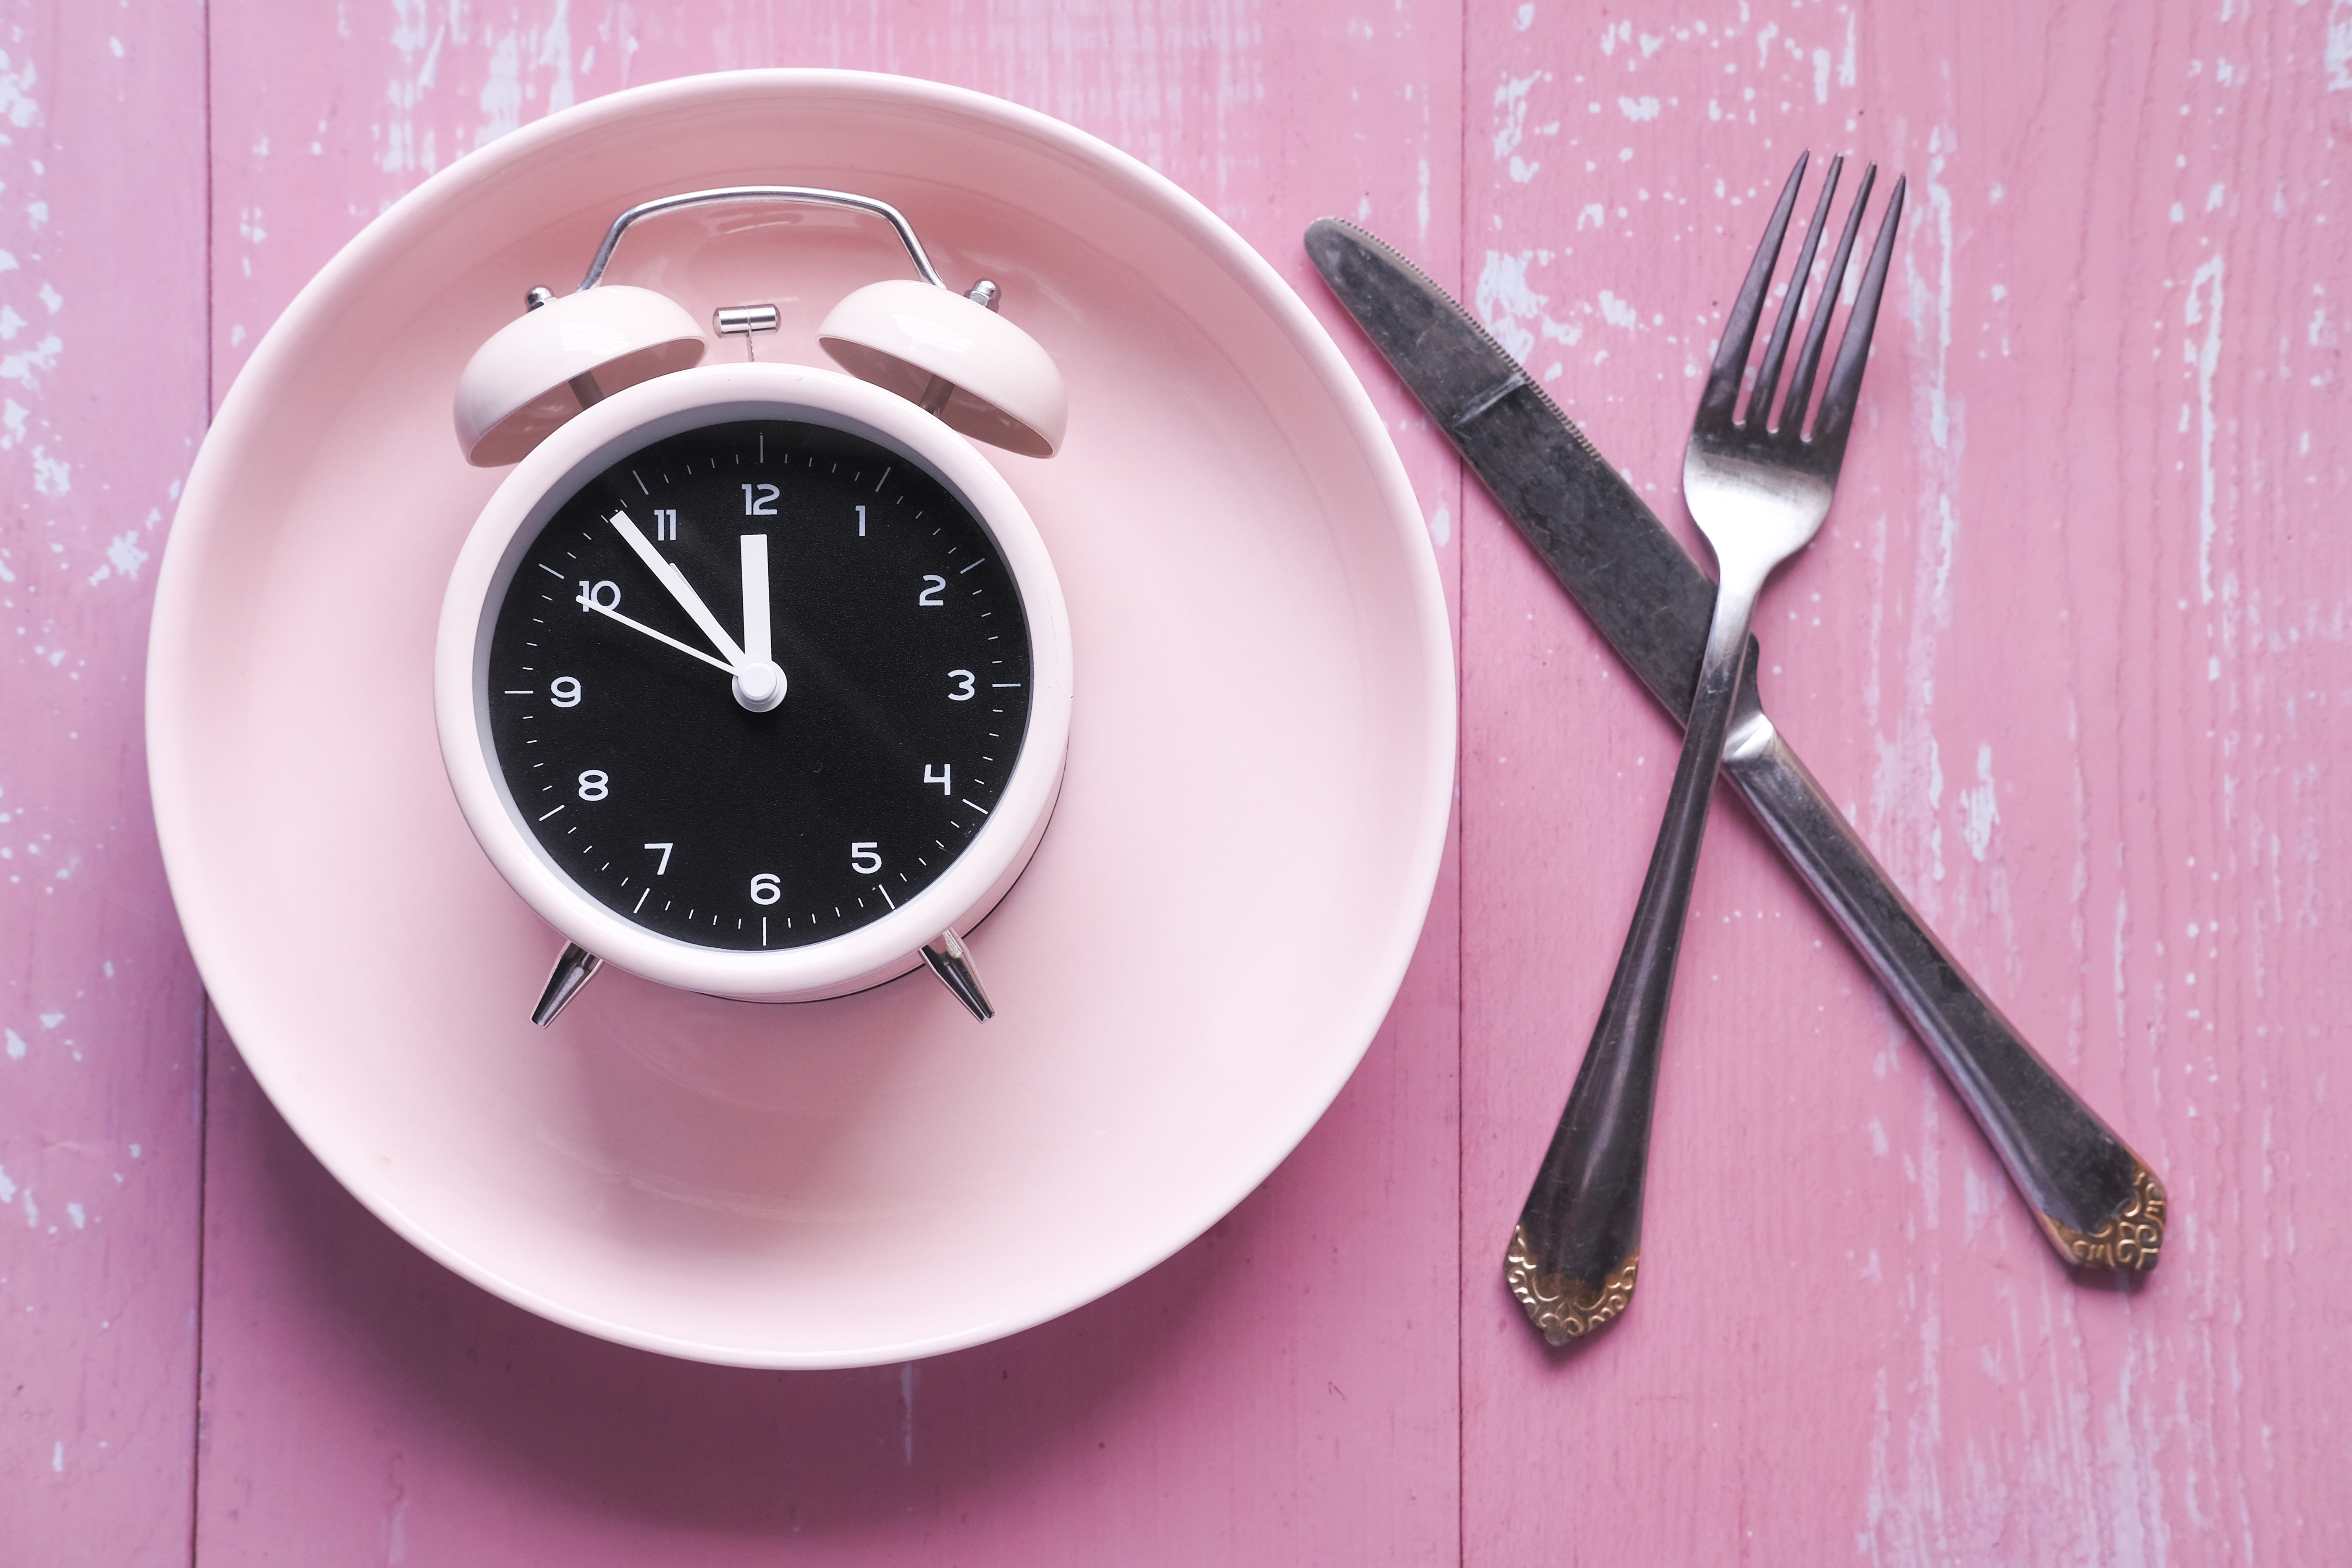 Does Early Restricted Eating Help You Lose Weight?